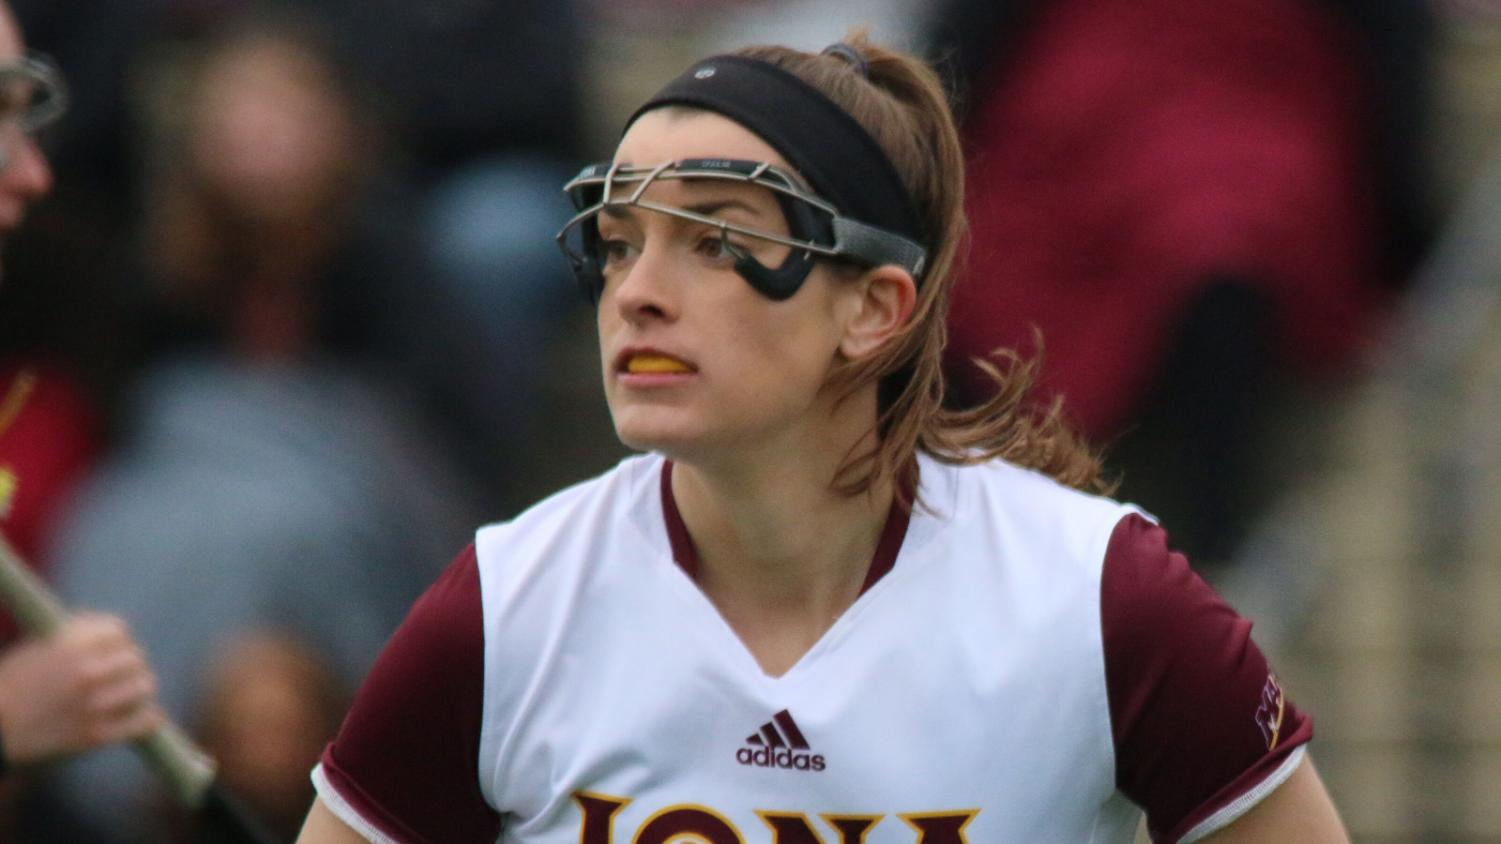 Senior Danielle Keenan scored two goals in her final season as a Gael.